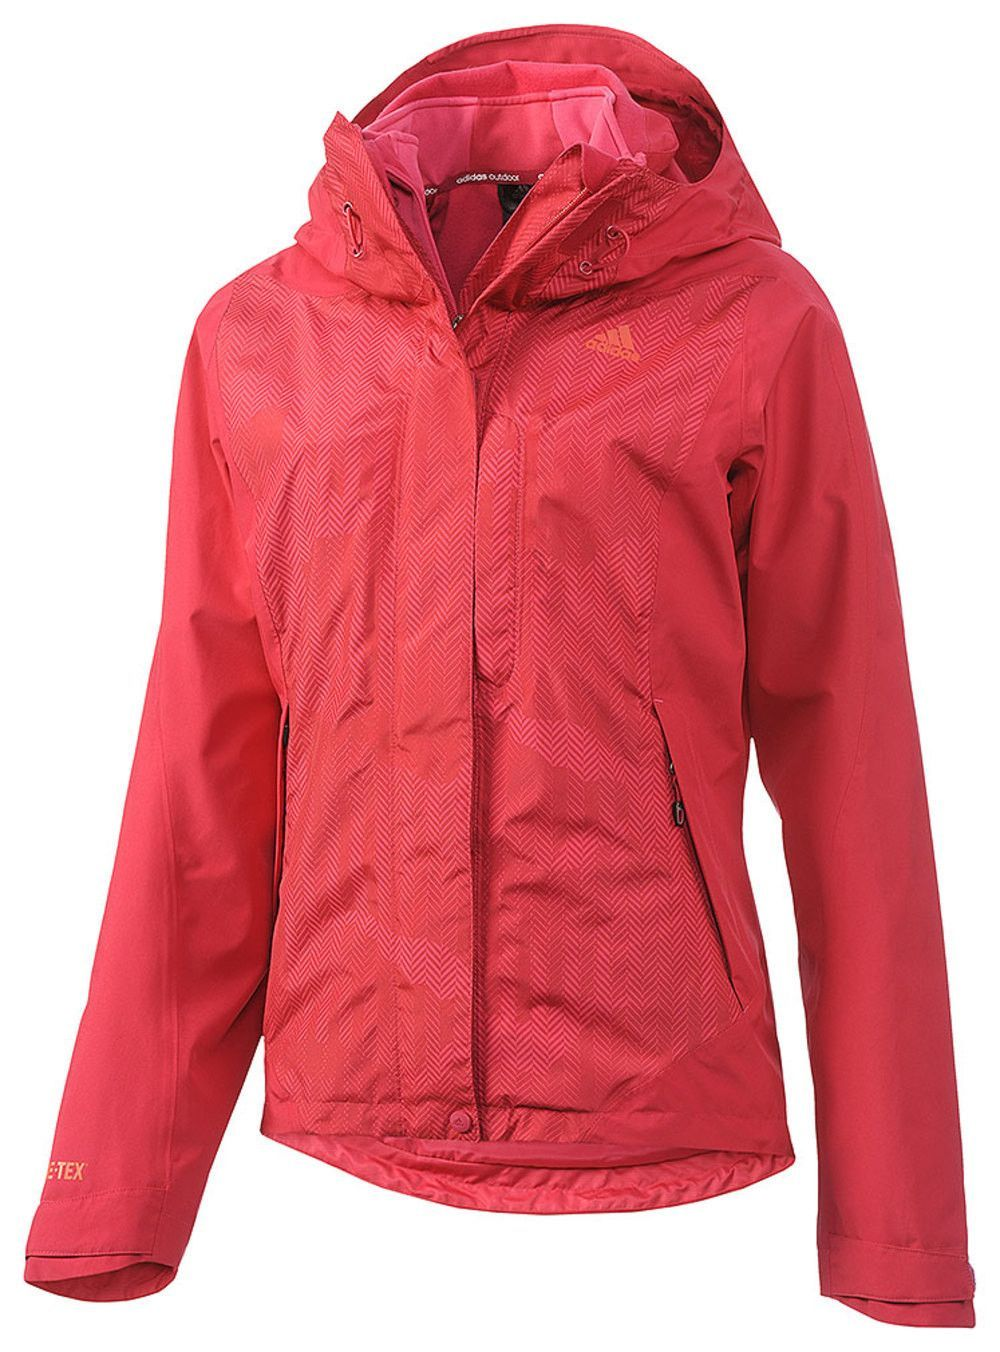 HT 3in1 GTX Jacket by adidas Sport Performance | Jackets